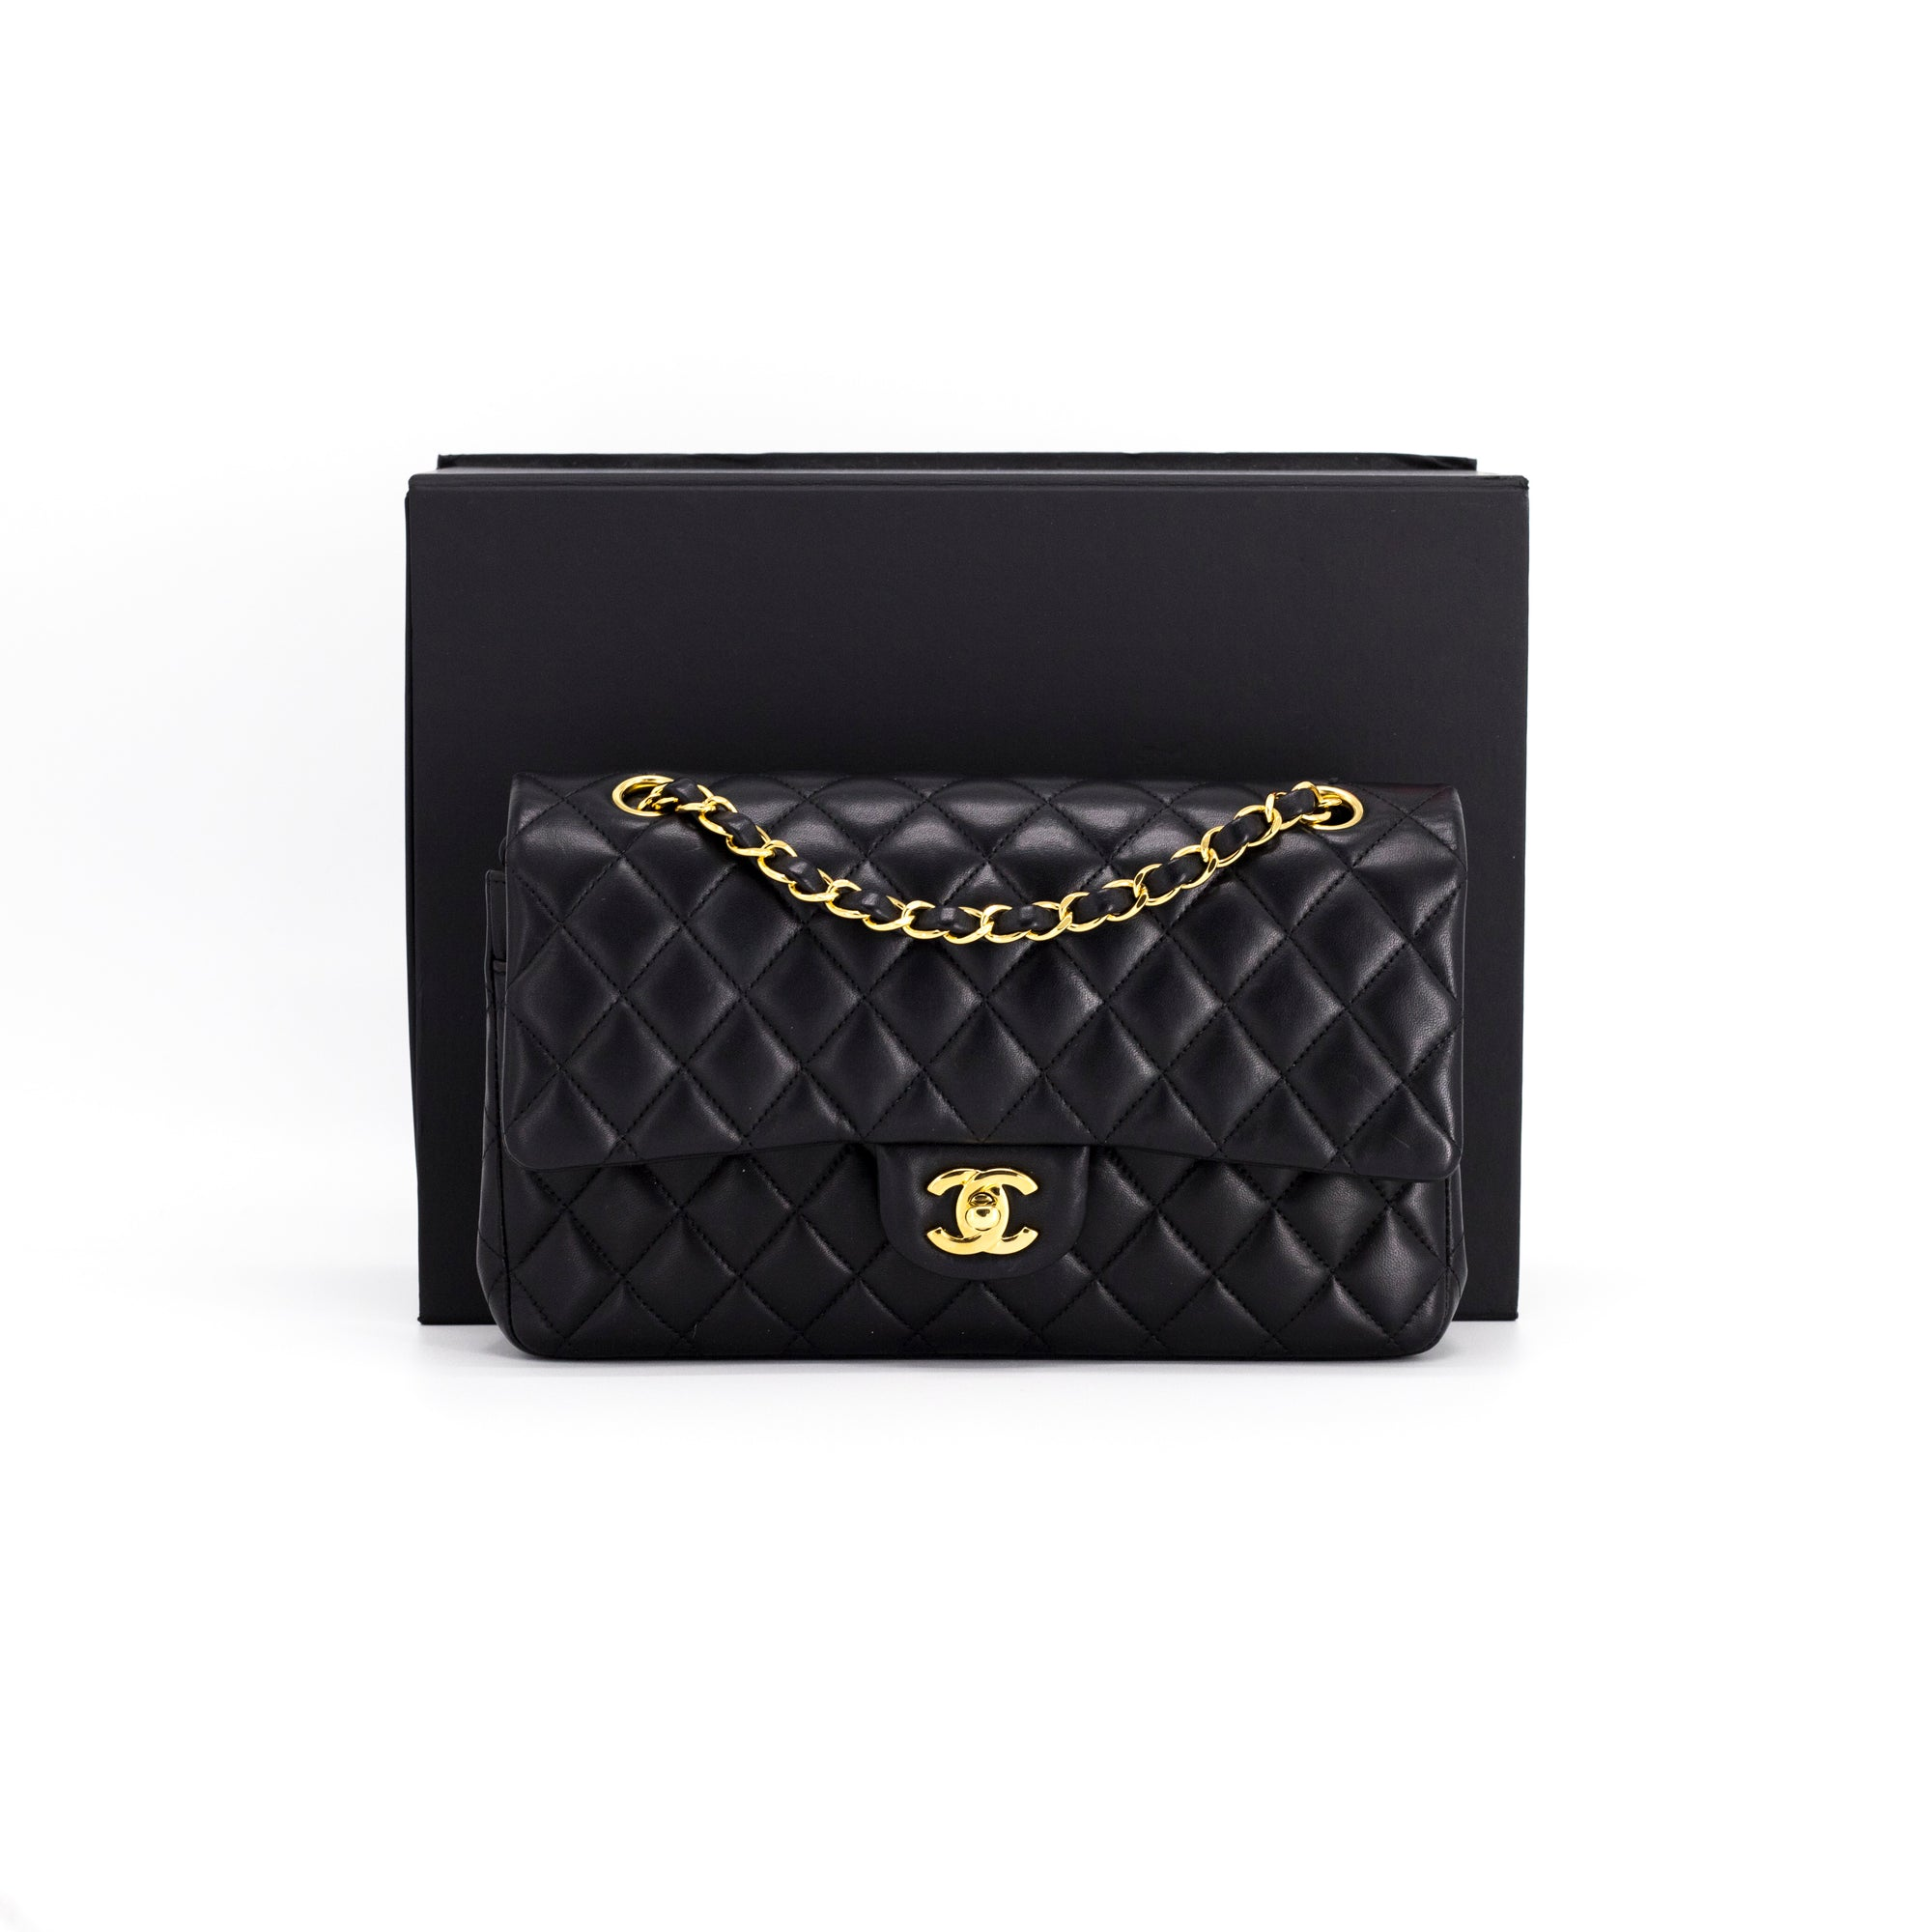 5ce5b499d926 CHANEL LAMBSKIN QUILTED CLASSIC MEDIUM/LARGE DOUBLE FLAP BLACK - THE PURSE  AFFAIR